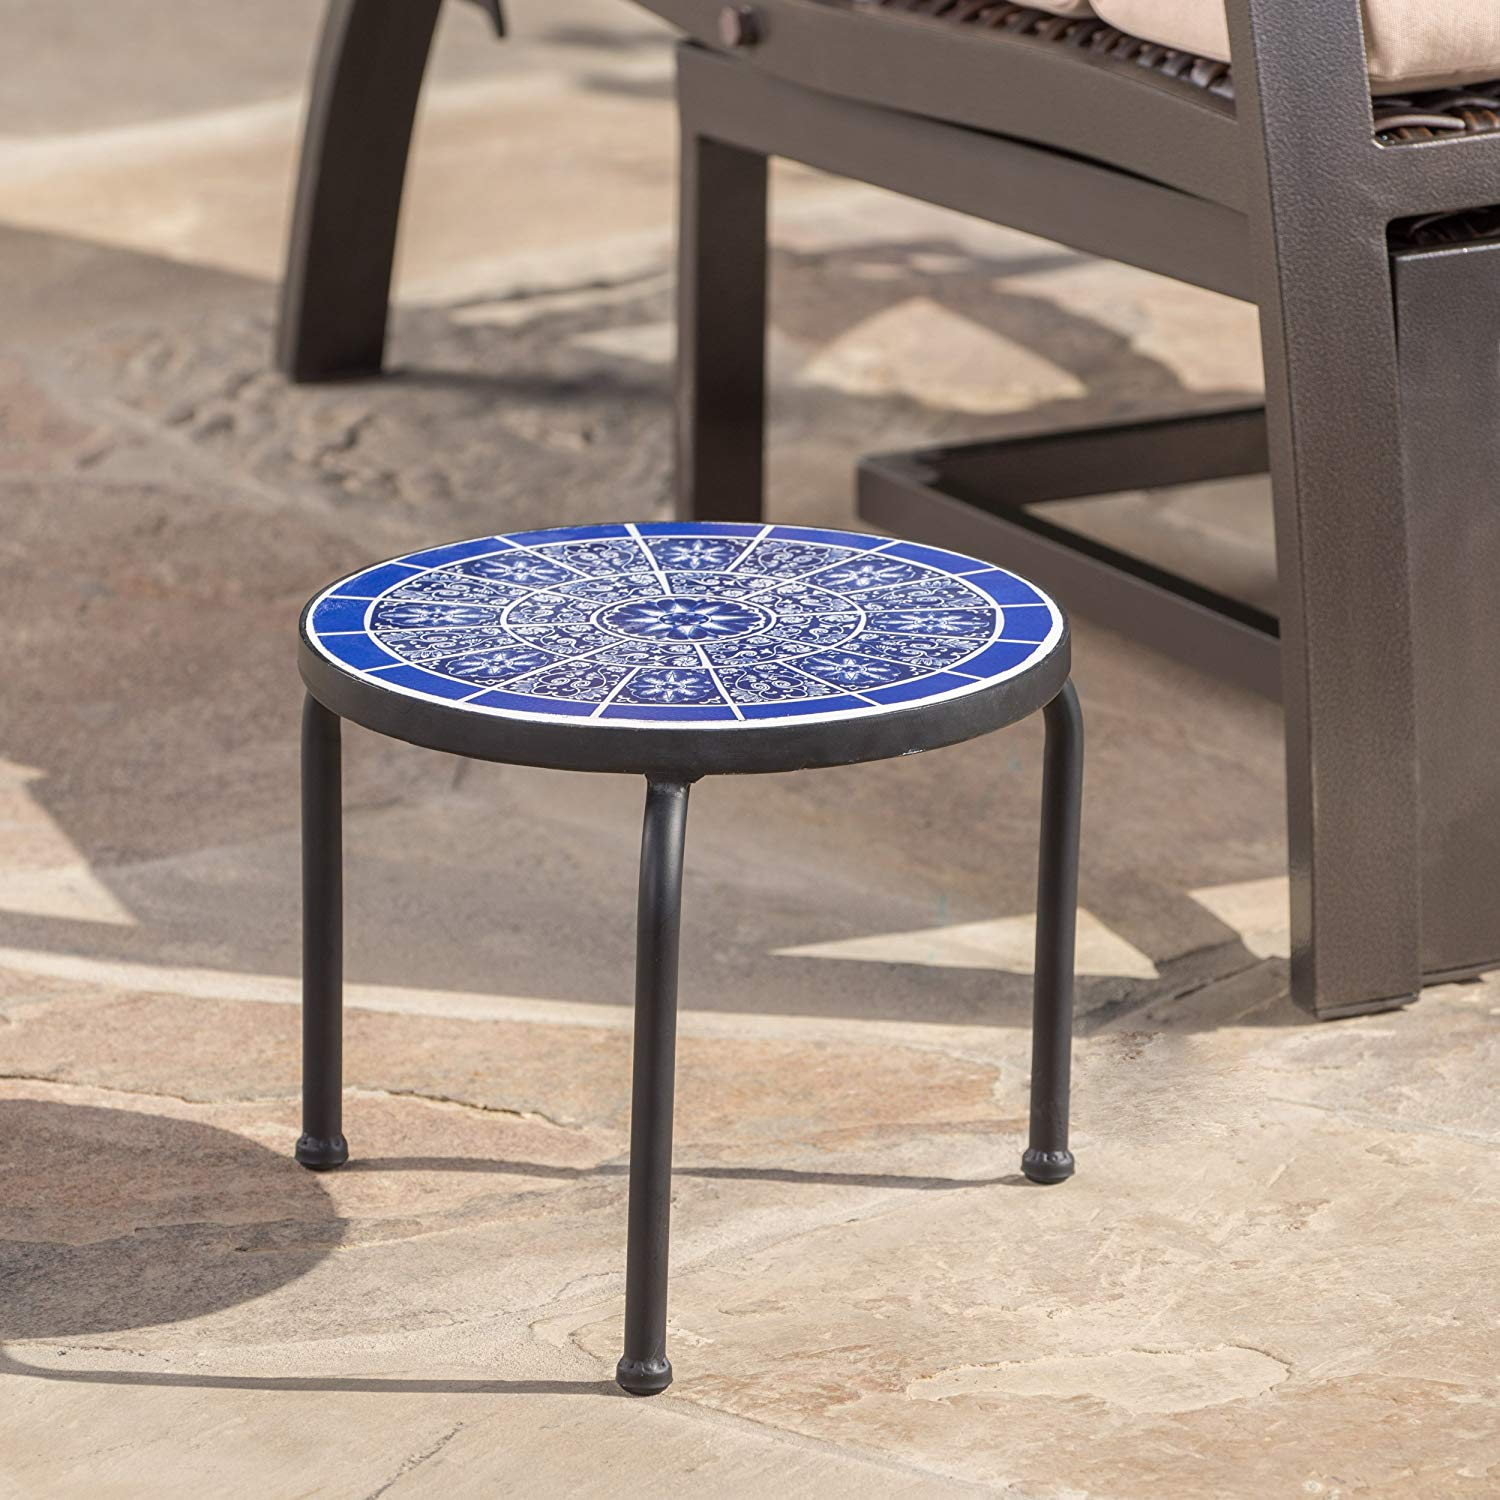 soleil outdoor blue white ceramic iron frame tile accent table side garden used furniture kohls bedspreads and comforters target floor rugs black inch round for less tablecloth